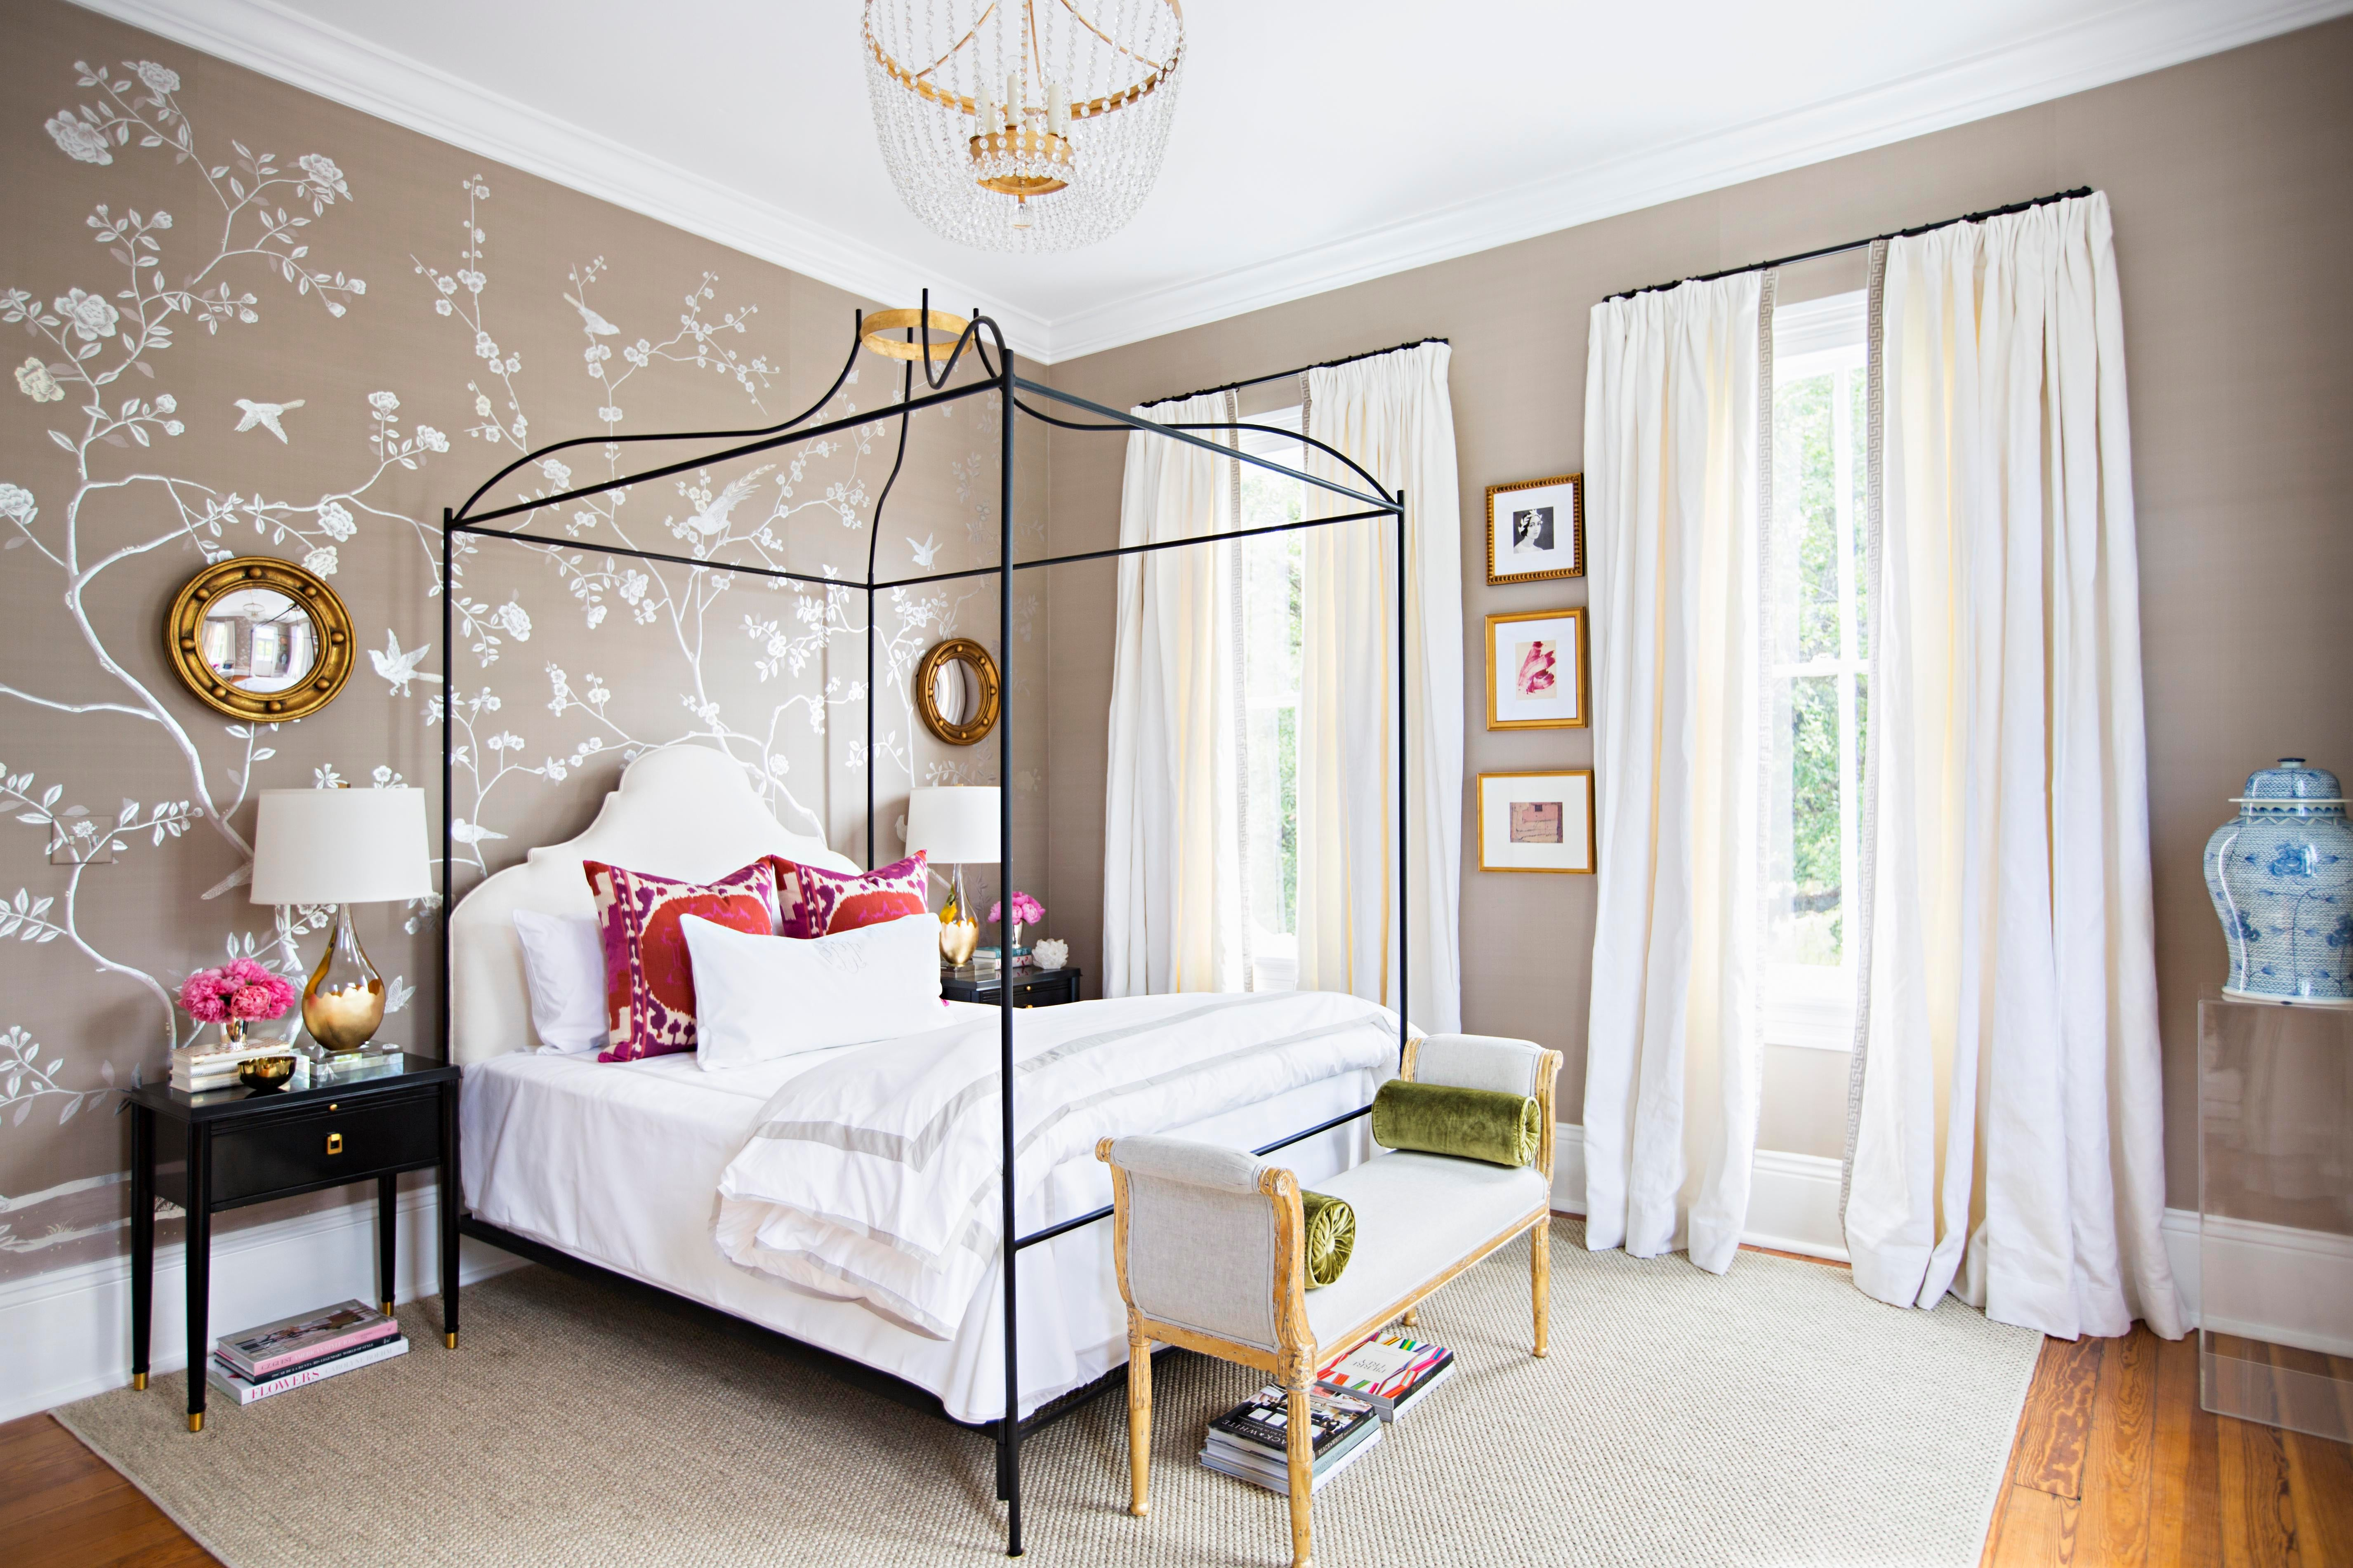 New Orleans Bedroom, Degournay Chinoiserie Wallpaper, Leontine Linens, Iron  Bed. Paloma Contreras Design